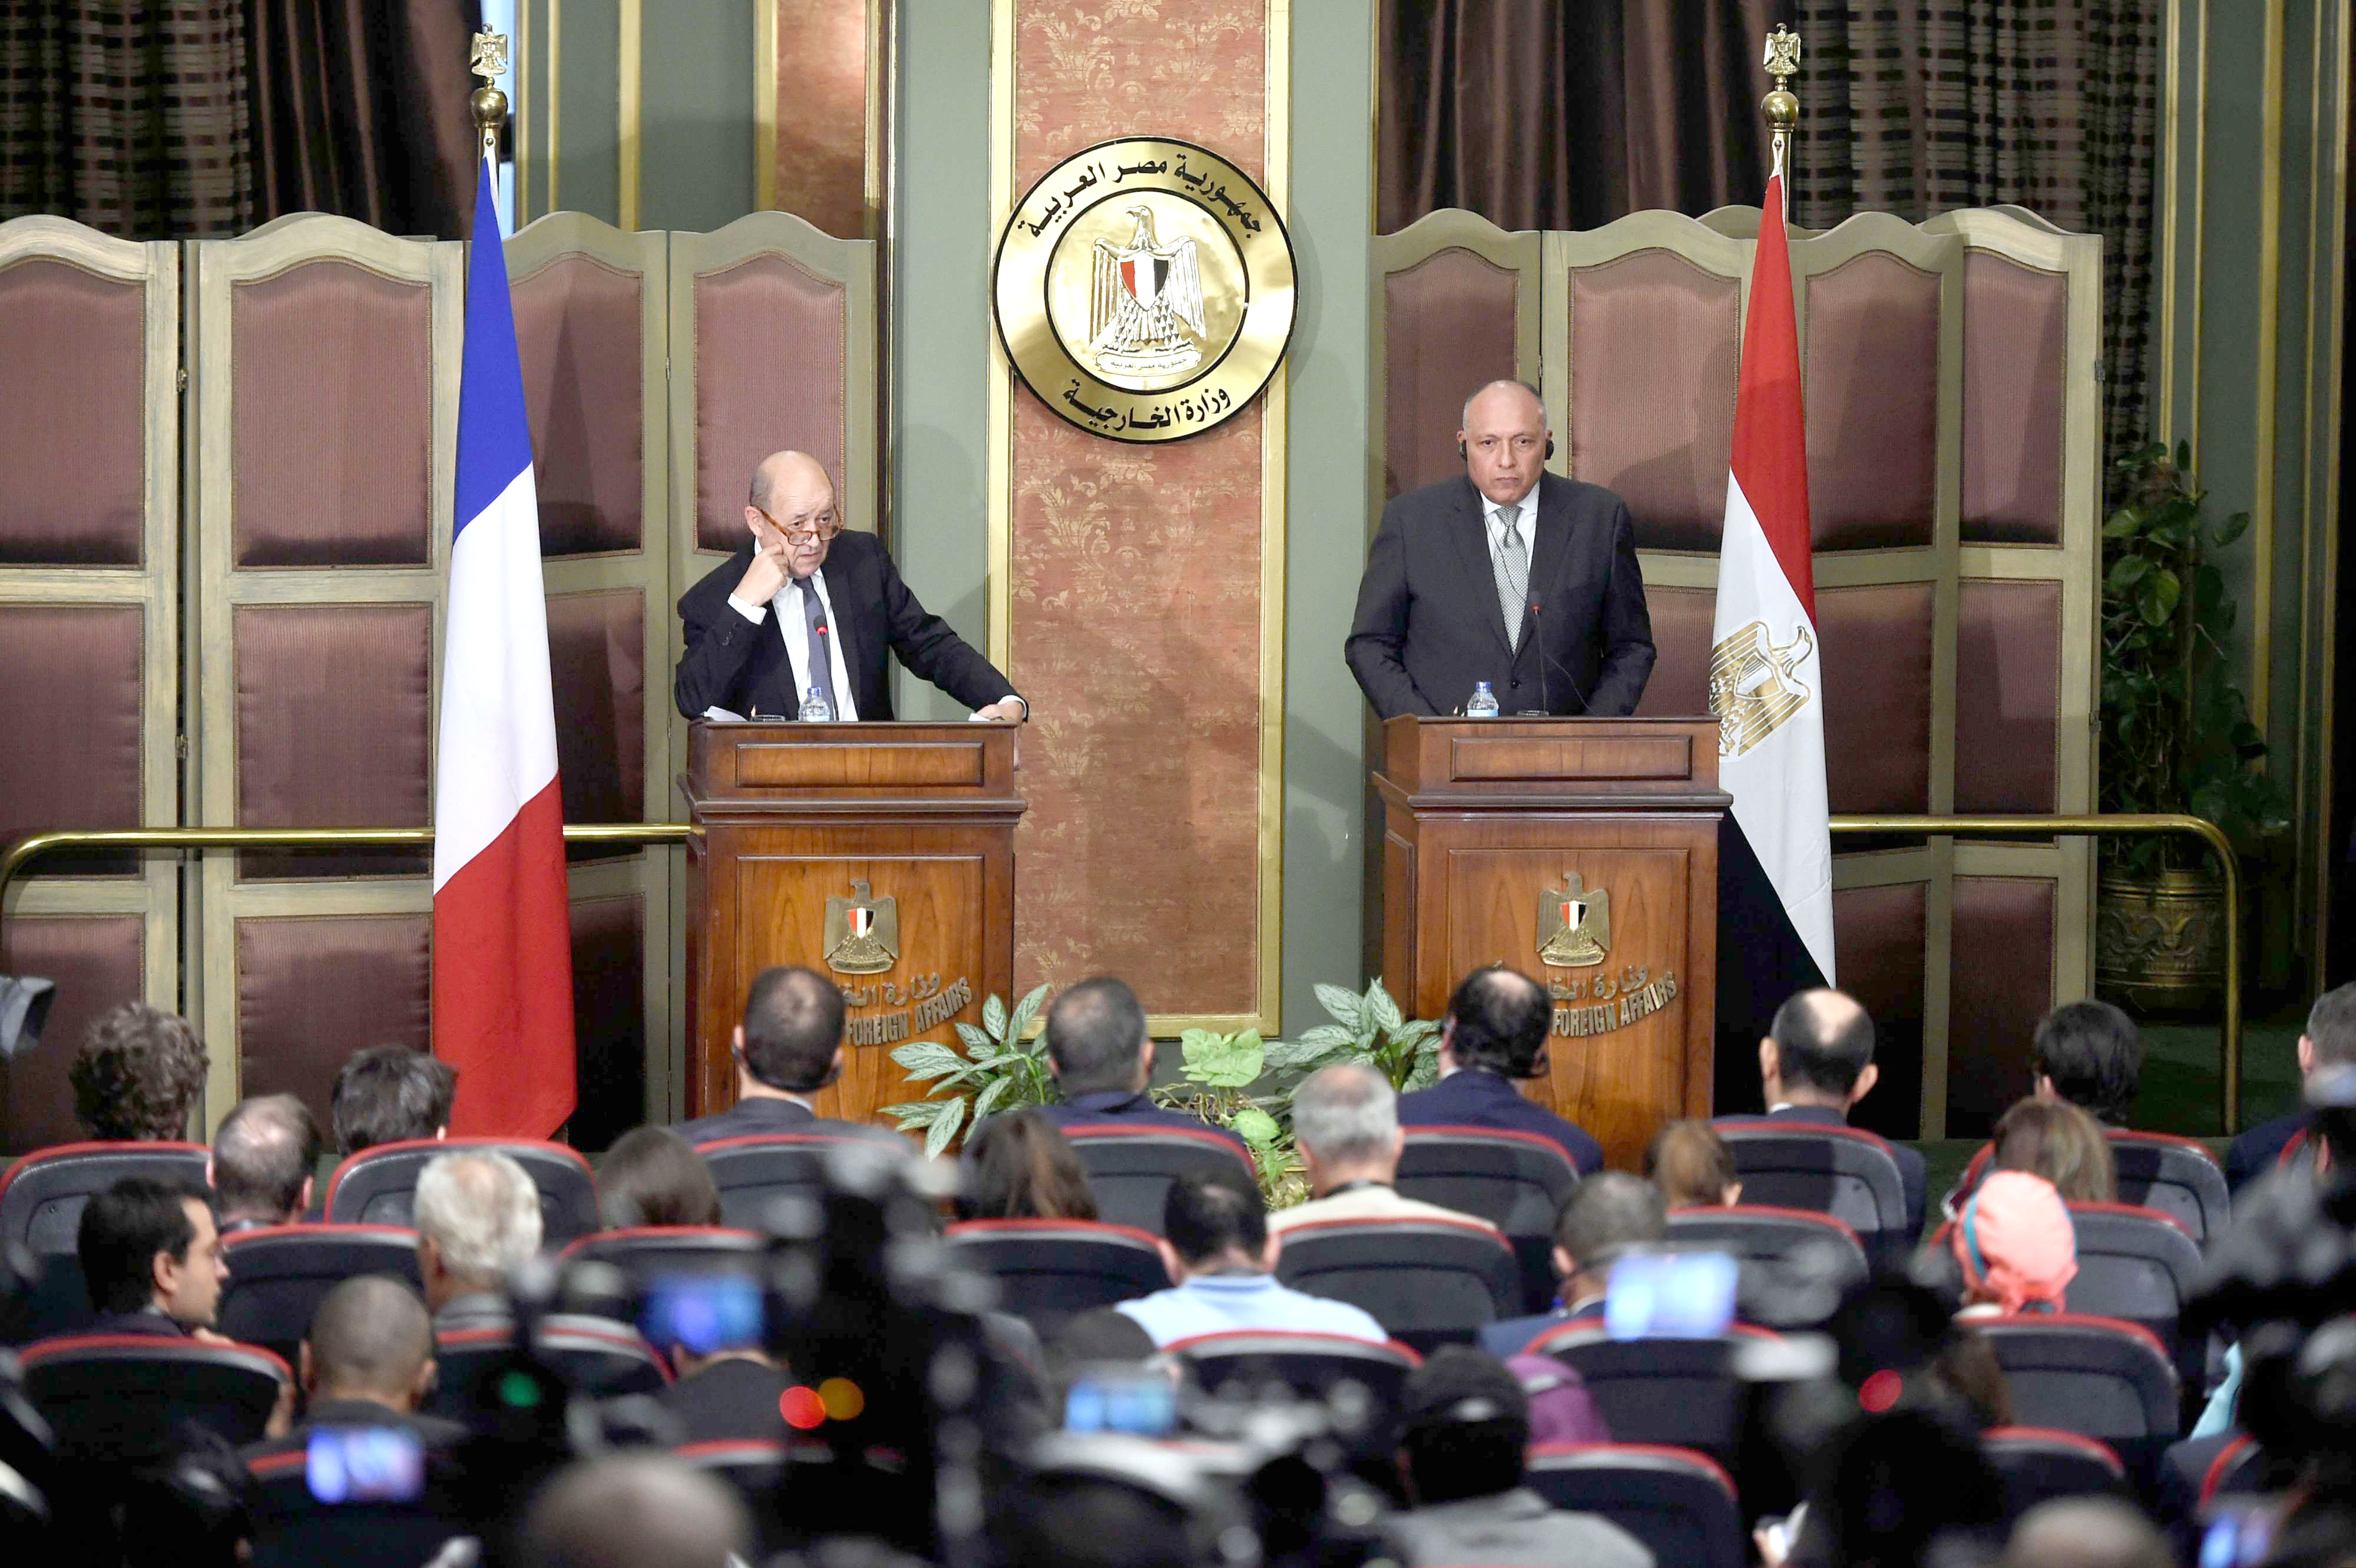 French Foreign Minister Jean-Yves Le Drian (L) speaks during a news conference with Egyptian Foreign Minister Sameh Shoukry in Cairo, on April 29. (AFP)